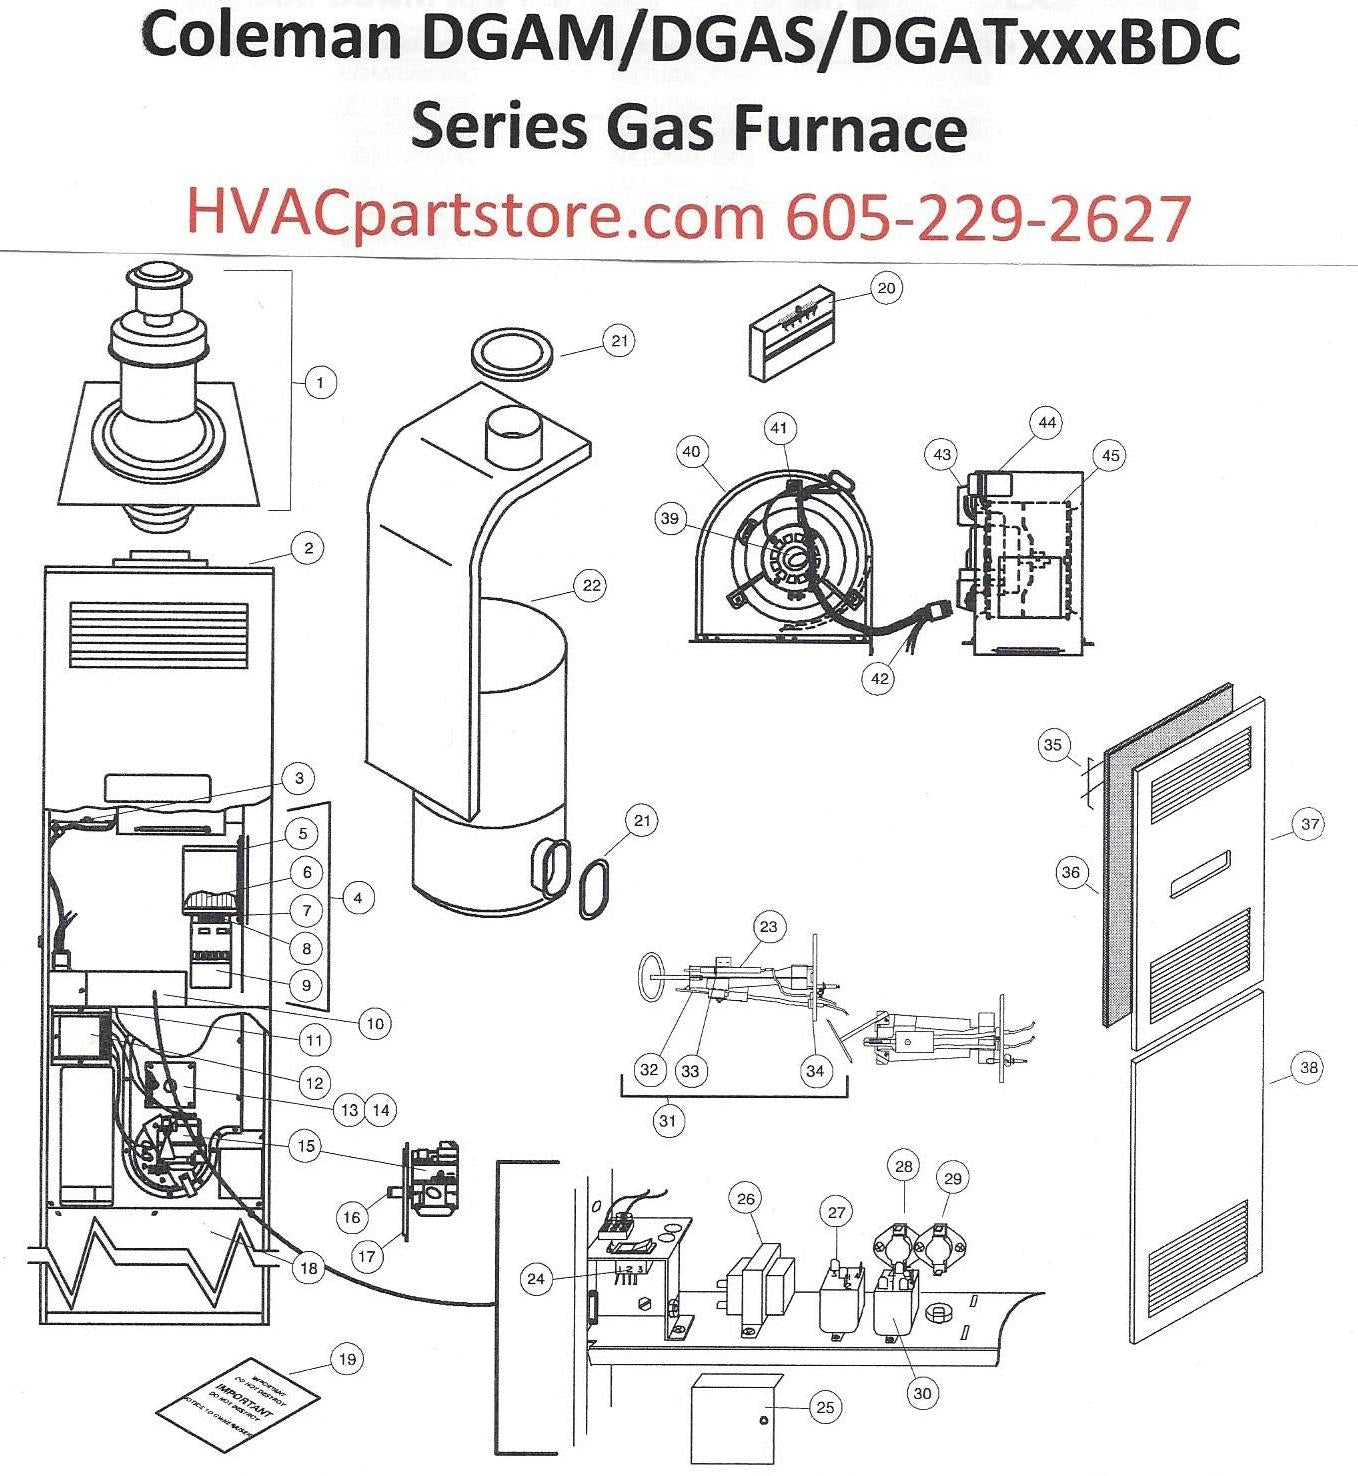 dgatbdd coleman gas furnace parts hvacpartstore click here to view a manual for the dgat070bdd which includes wiring diagrams